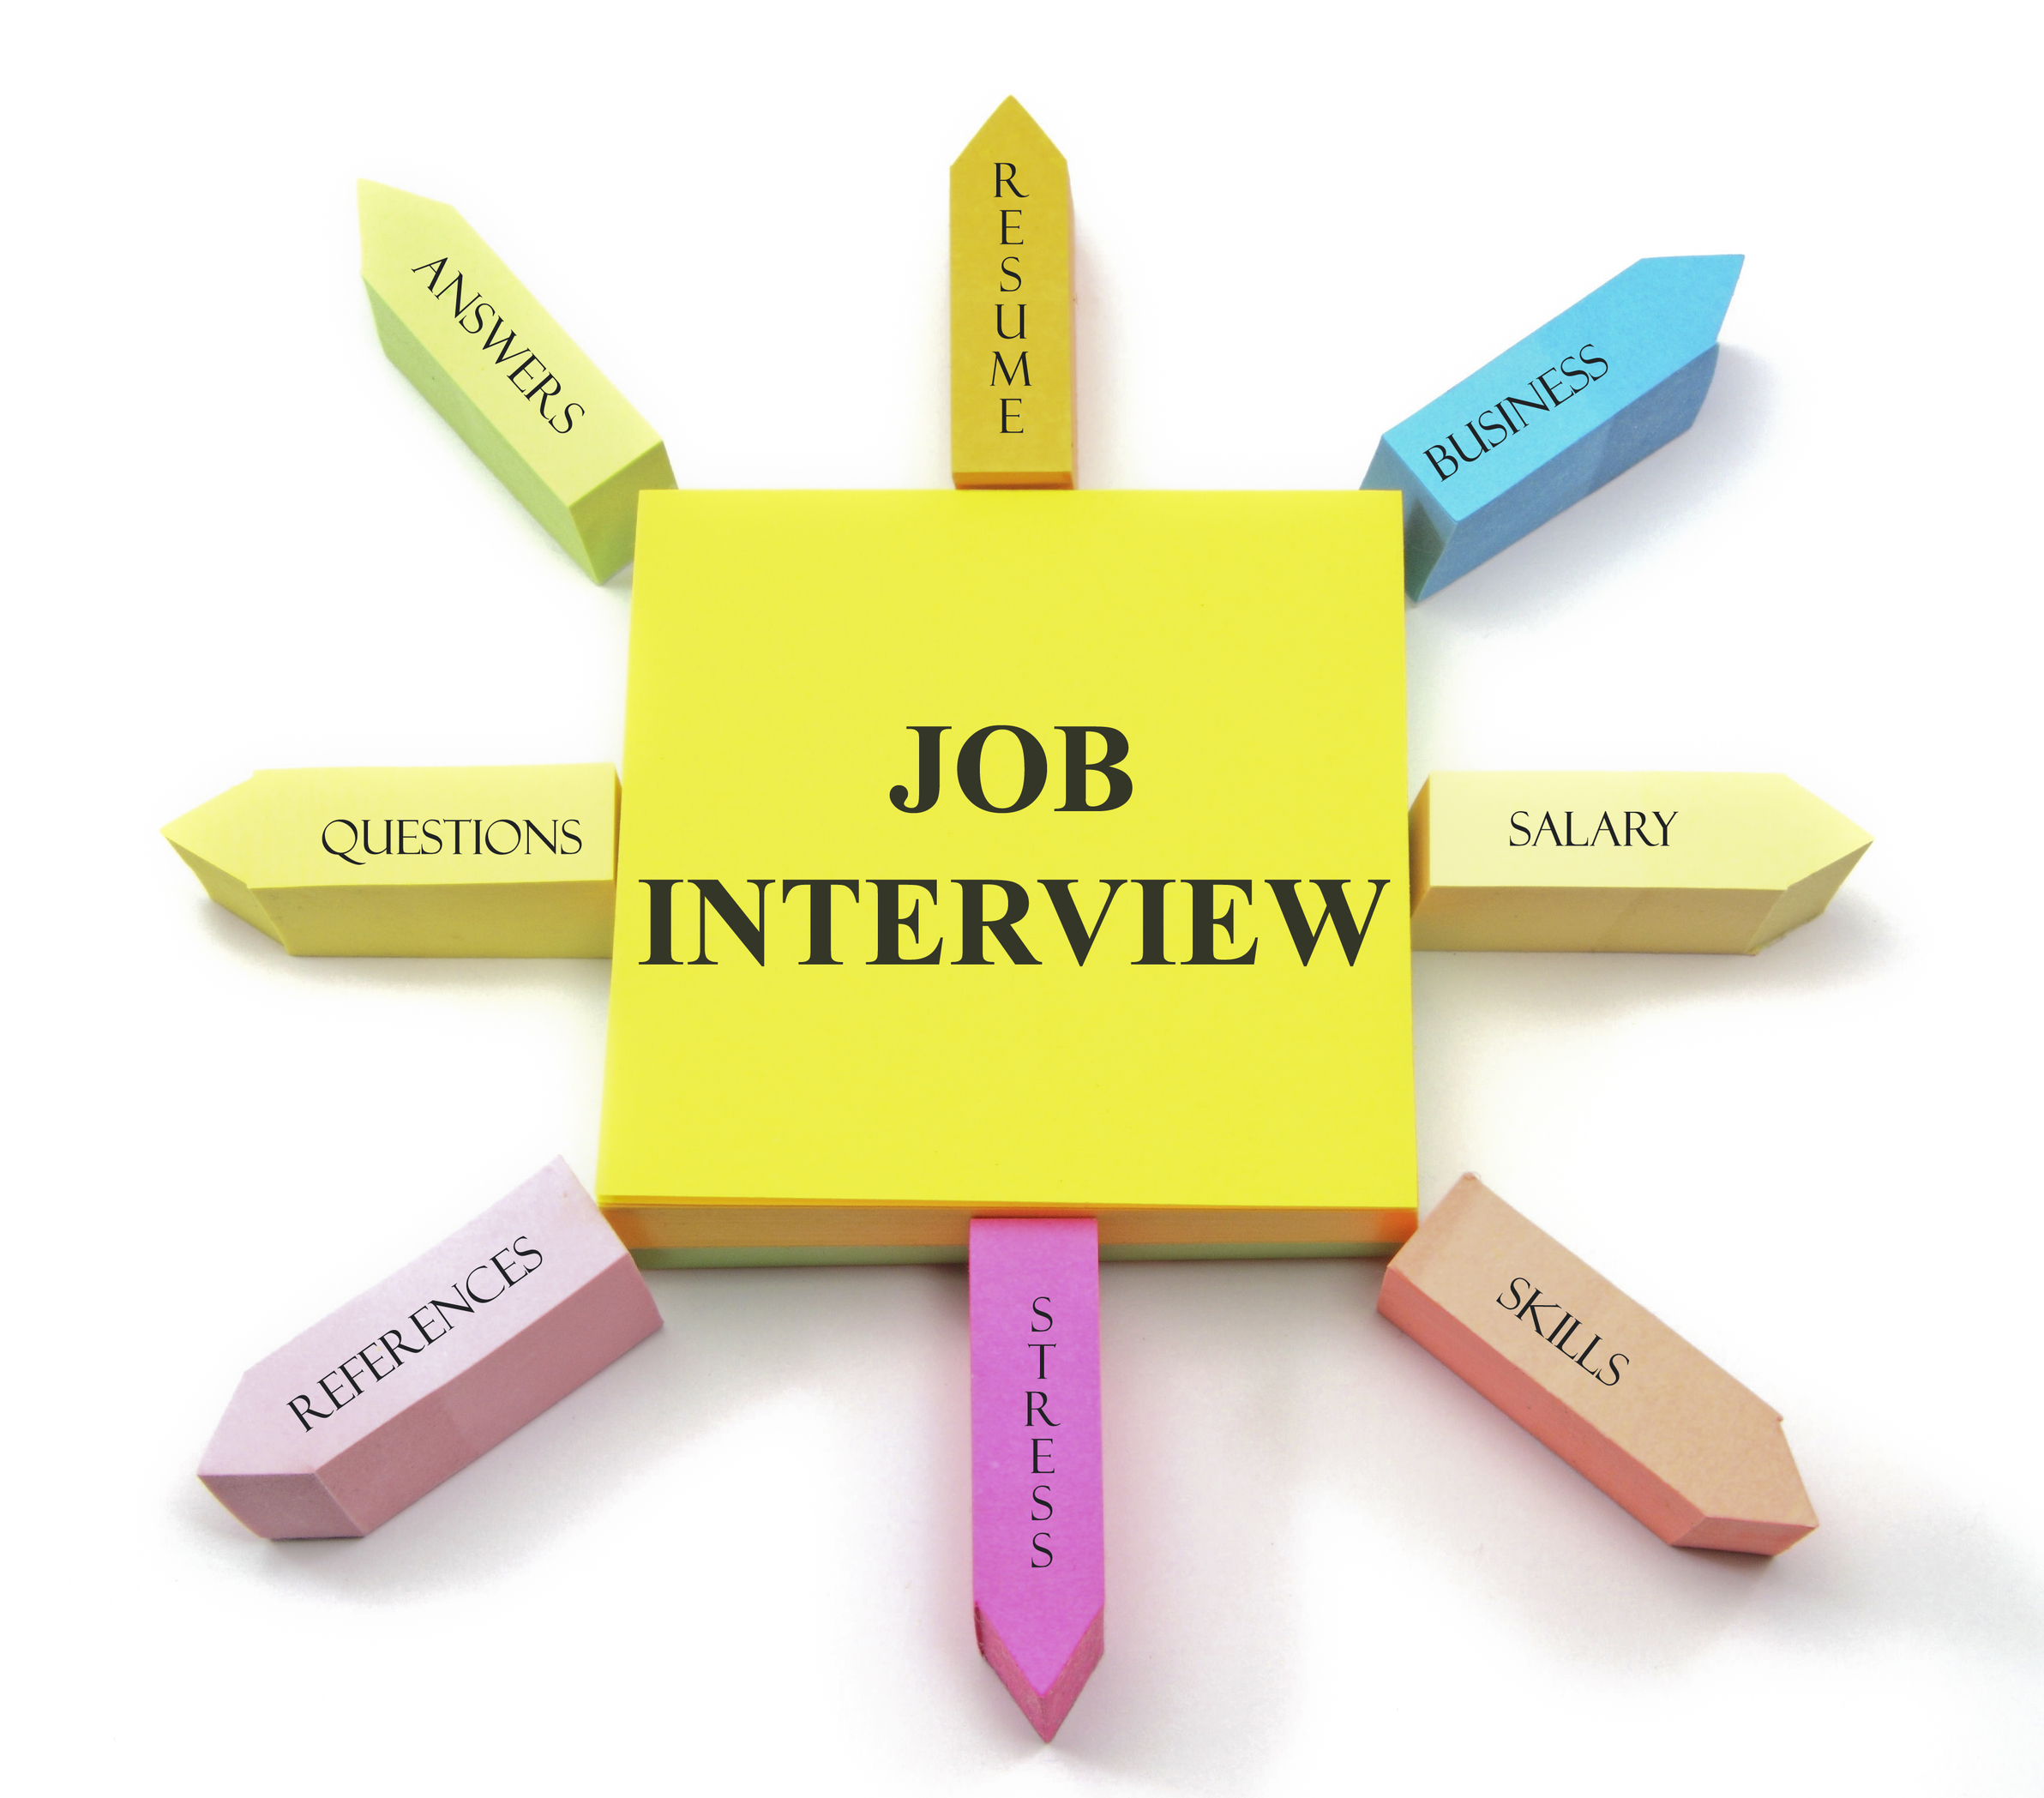 executive interview questions and how to answer them although you re excited about this position you re understandably nervous about the upcoming interview